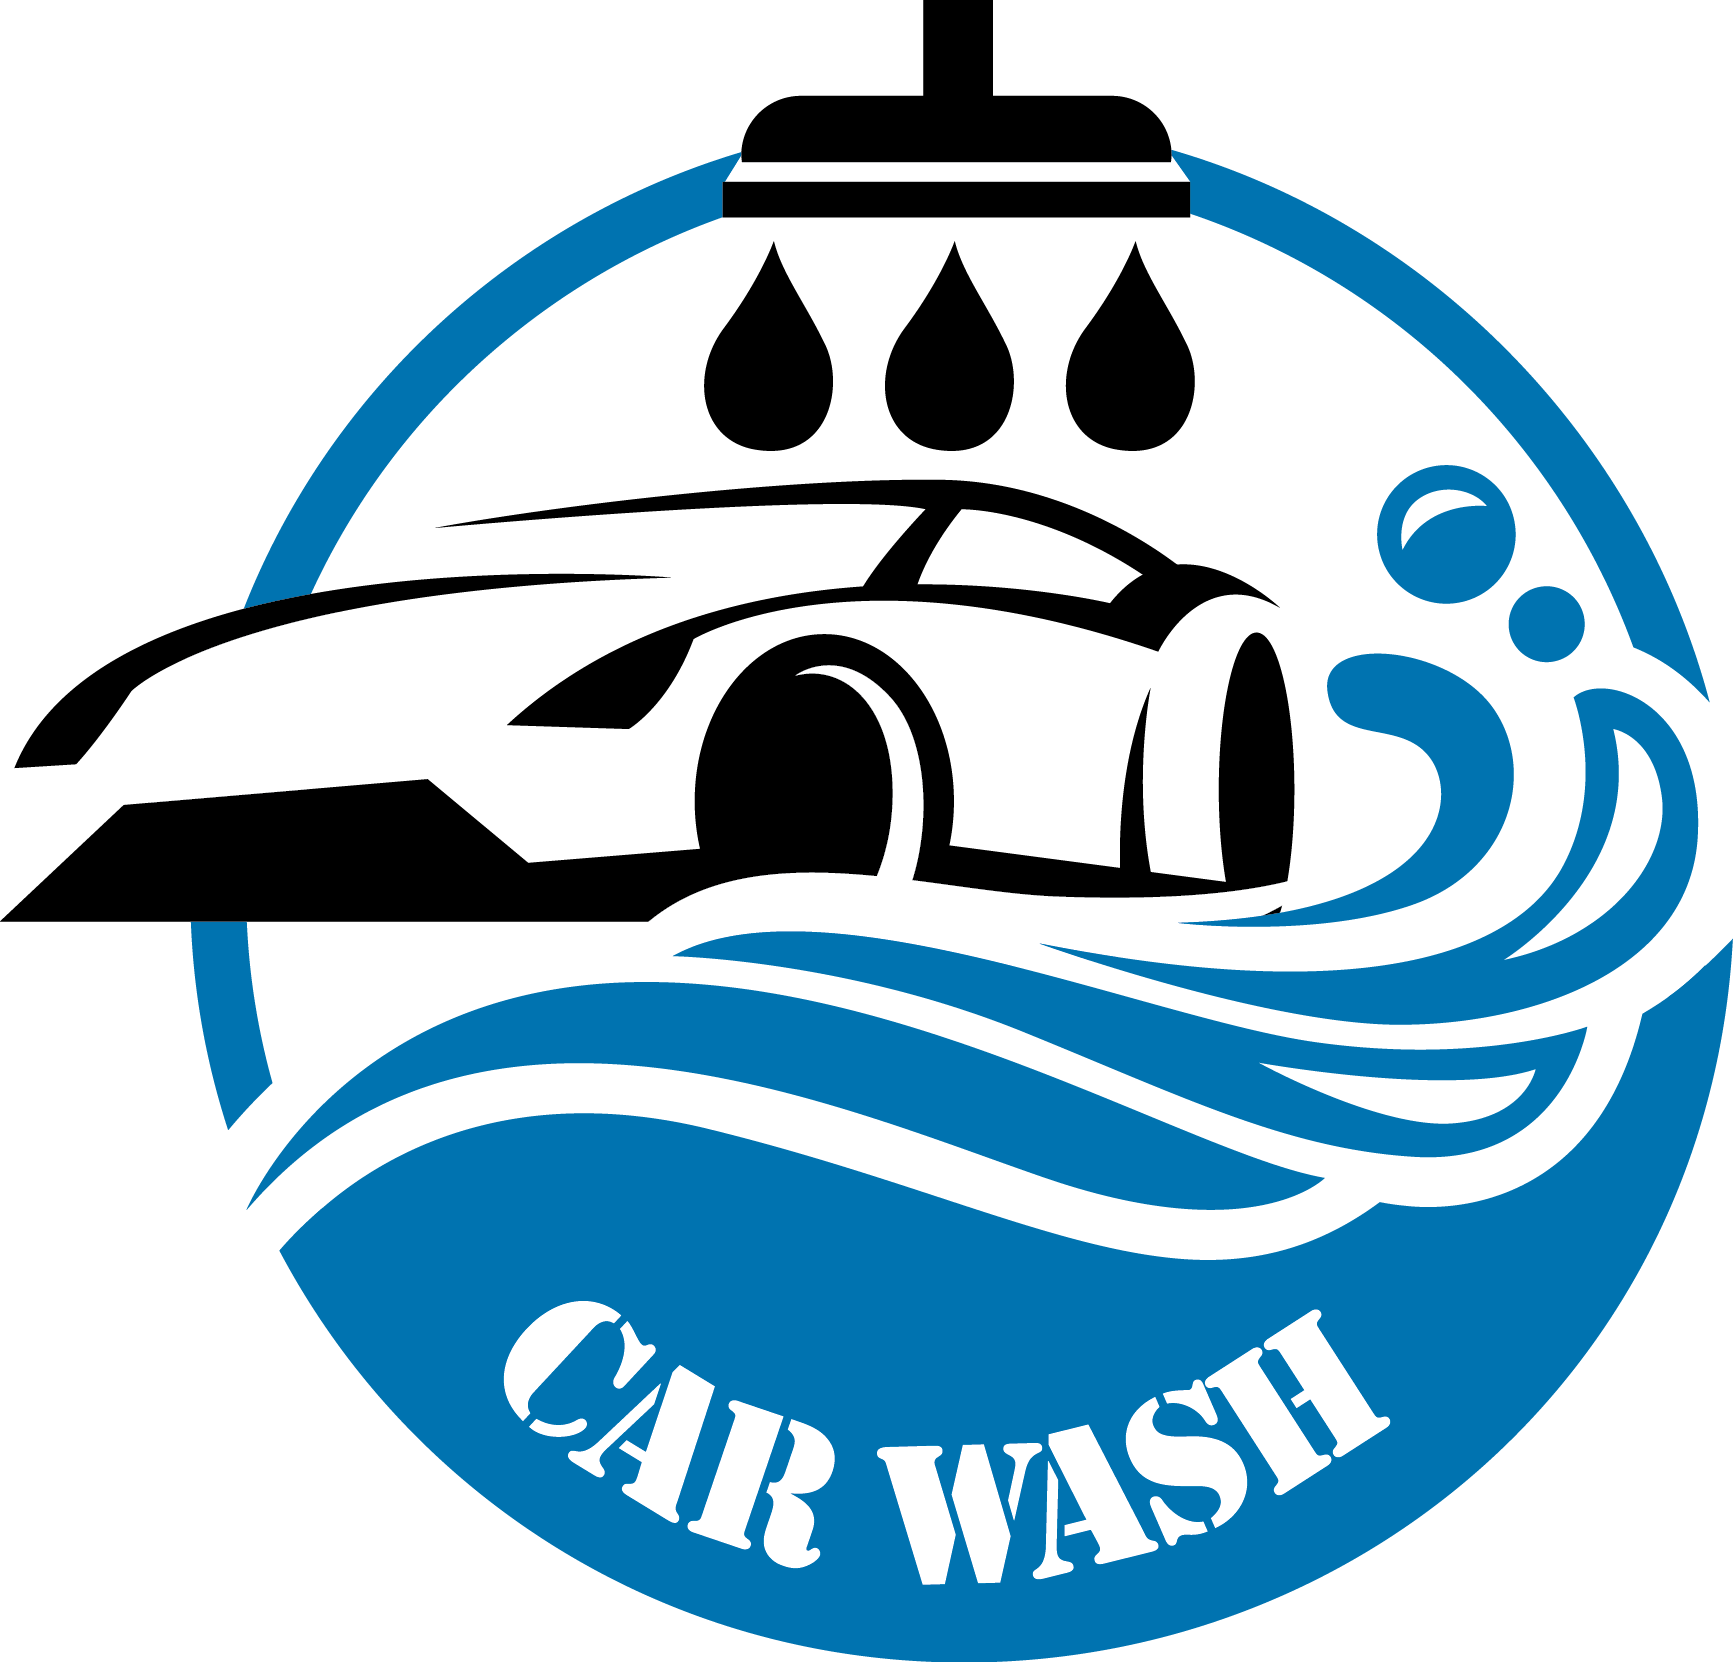 Car emission clipart clipart download Car Wash | Calhoun Beach BP | Auto Repair in Minneapolis, MNCalhoun ... clipart download